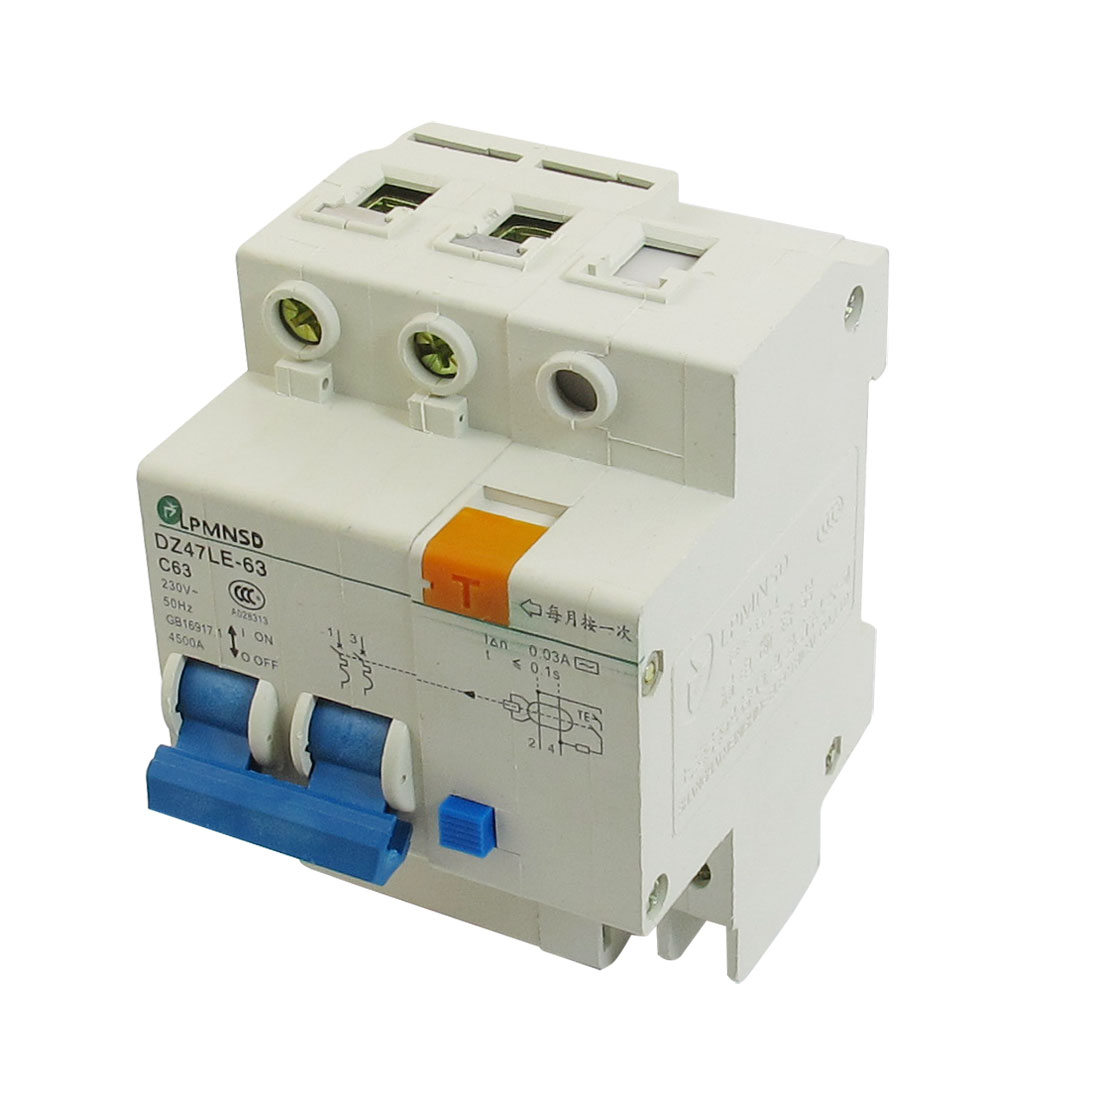 AC 230V 63A Two Pole DZ47LE-63 On/Off Switch Mini Circuit Breaker 4500A